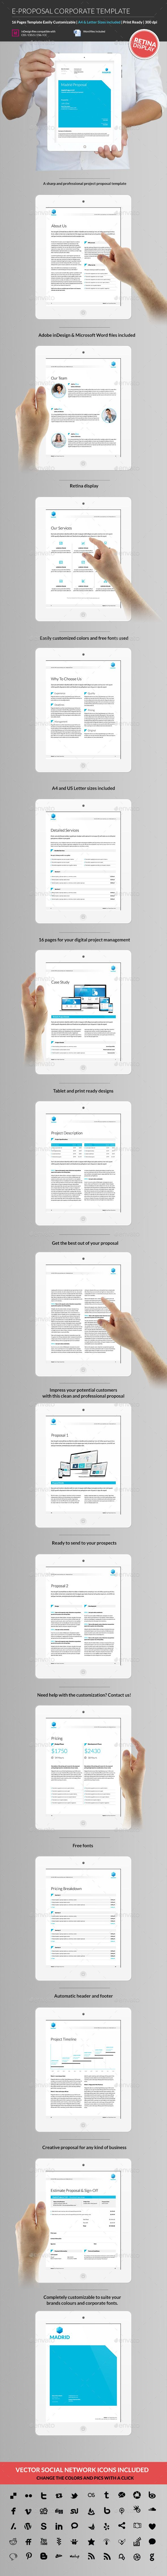 E Proposal Business Proposal Template Proposal Design Indesign Layout